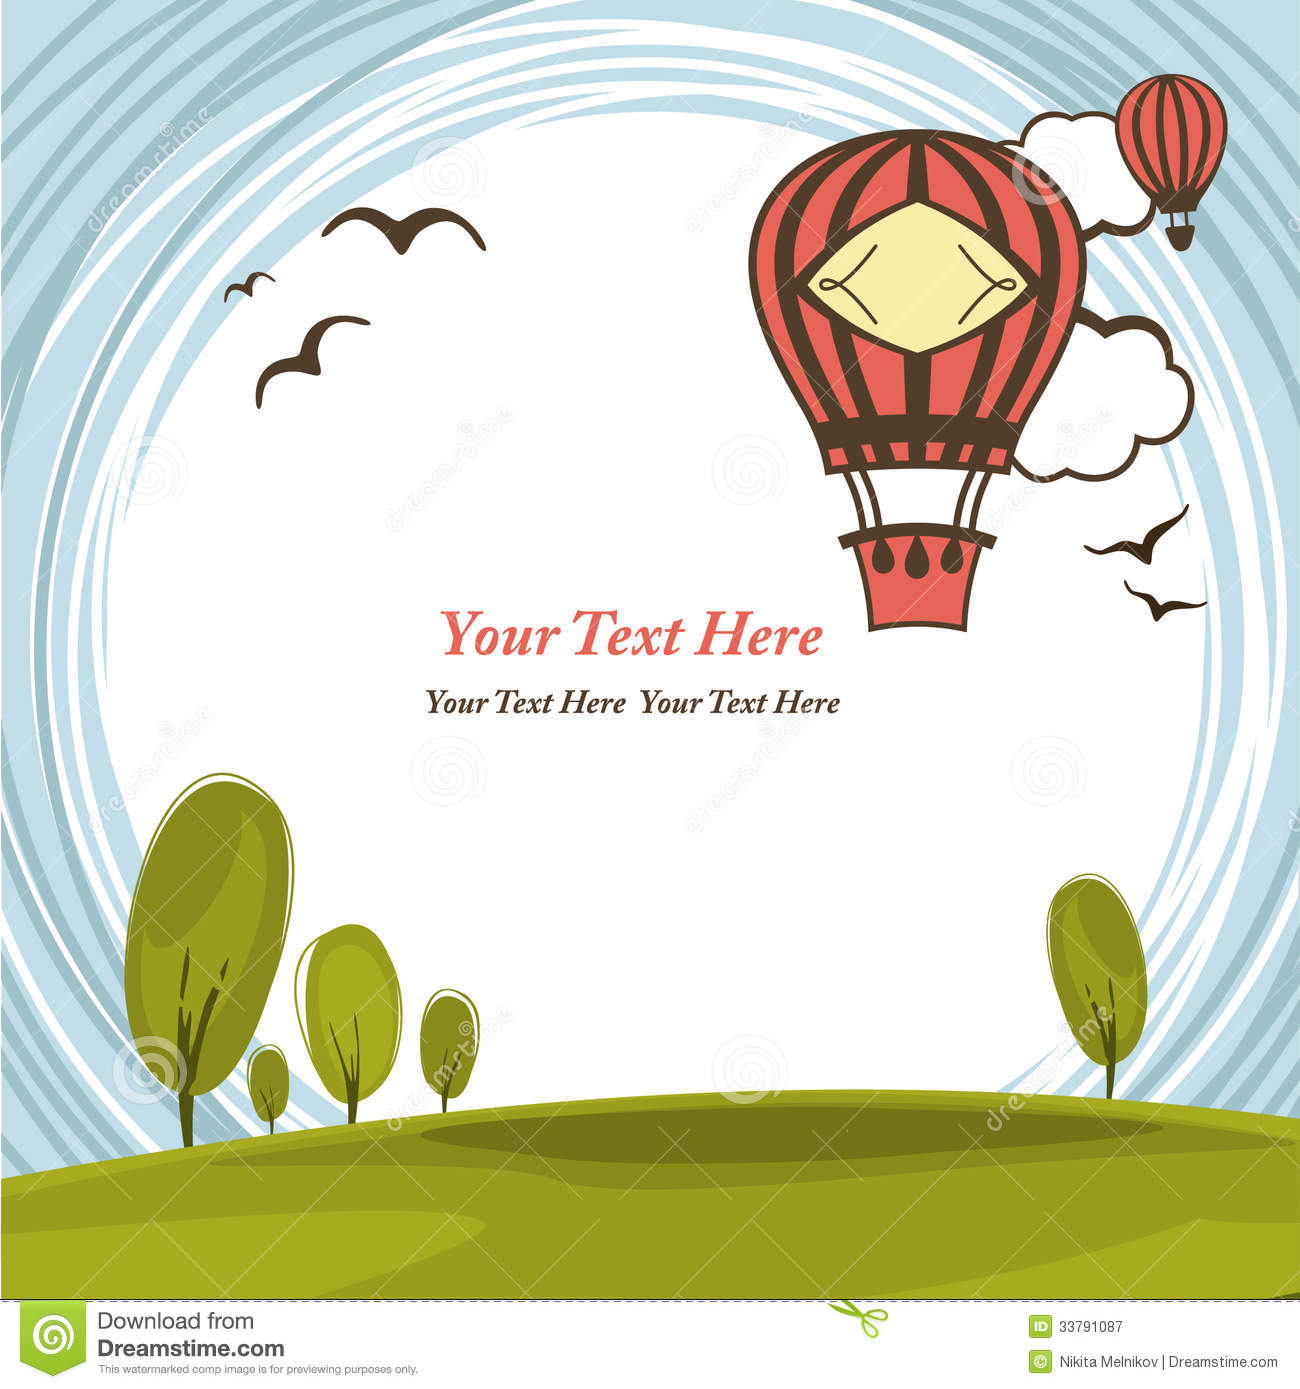 Frame With Hot Air Balloon Stock Vector Illustration Of Background